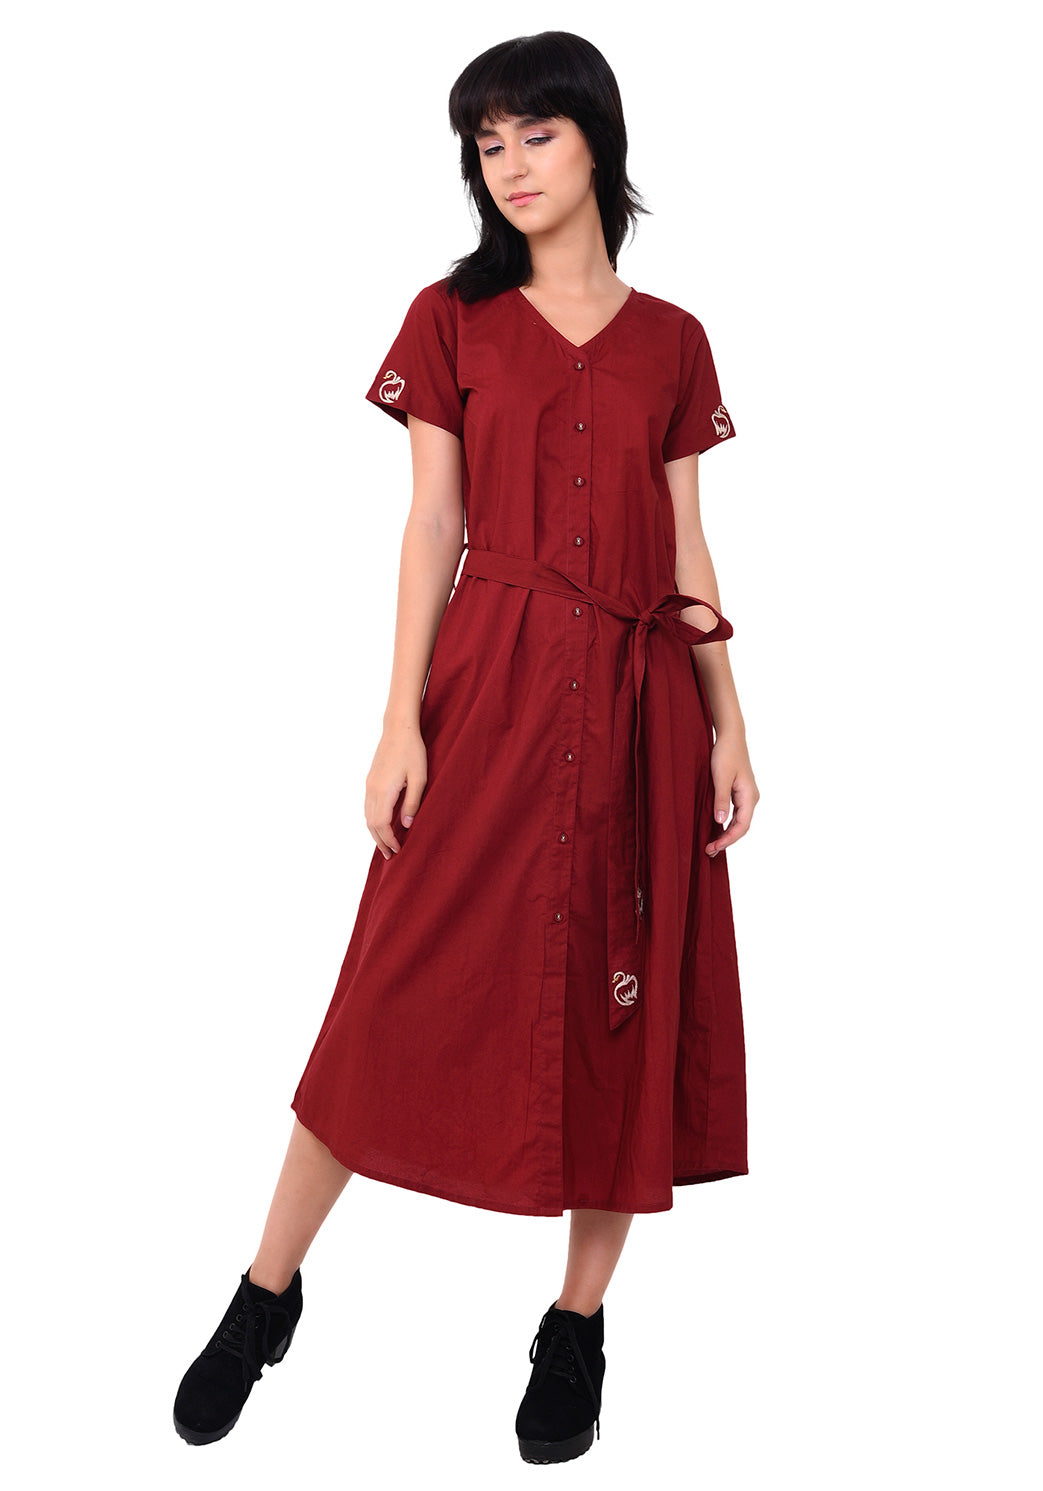 Embroidered V- Neck Button Down Dress - Maroon